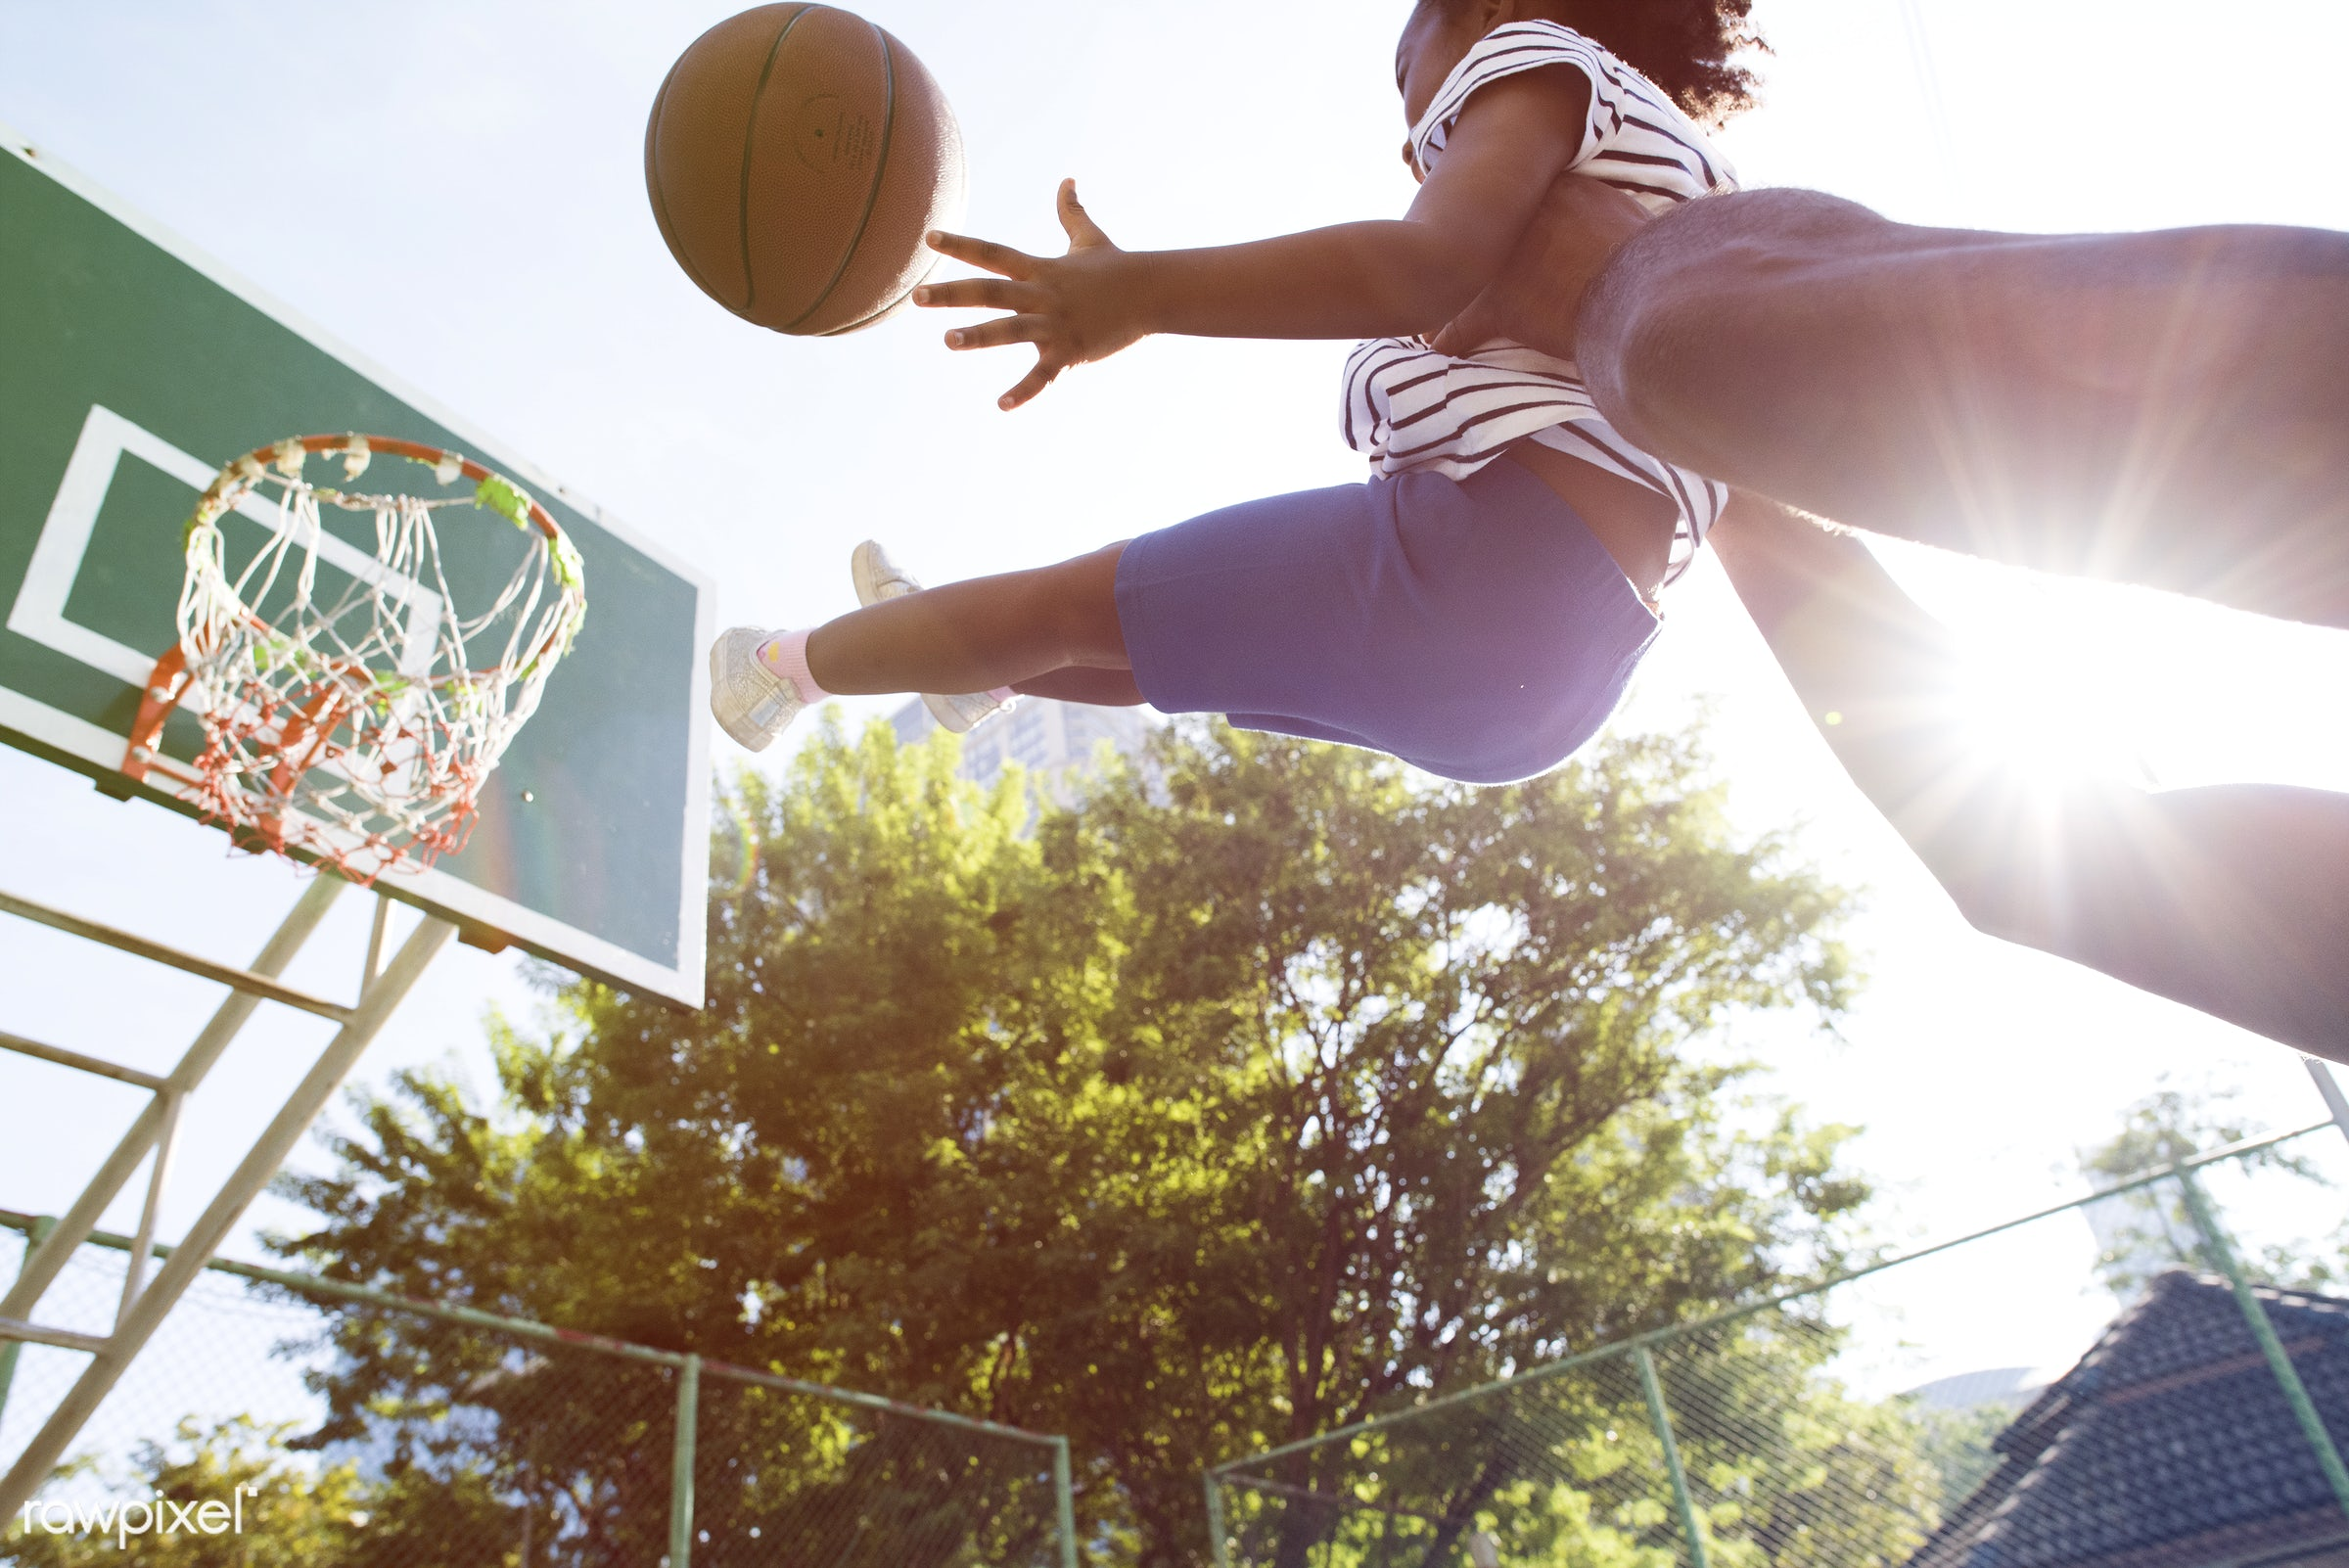 basketball, athletics, player, african, street, court, exercise, recreation, father, arena, family, activity, athlete, ball...